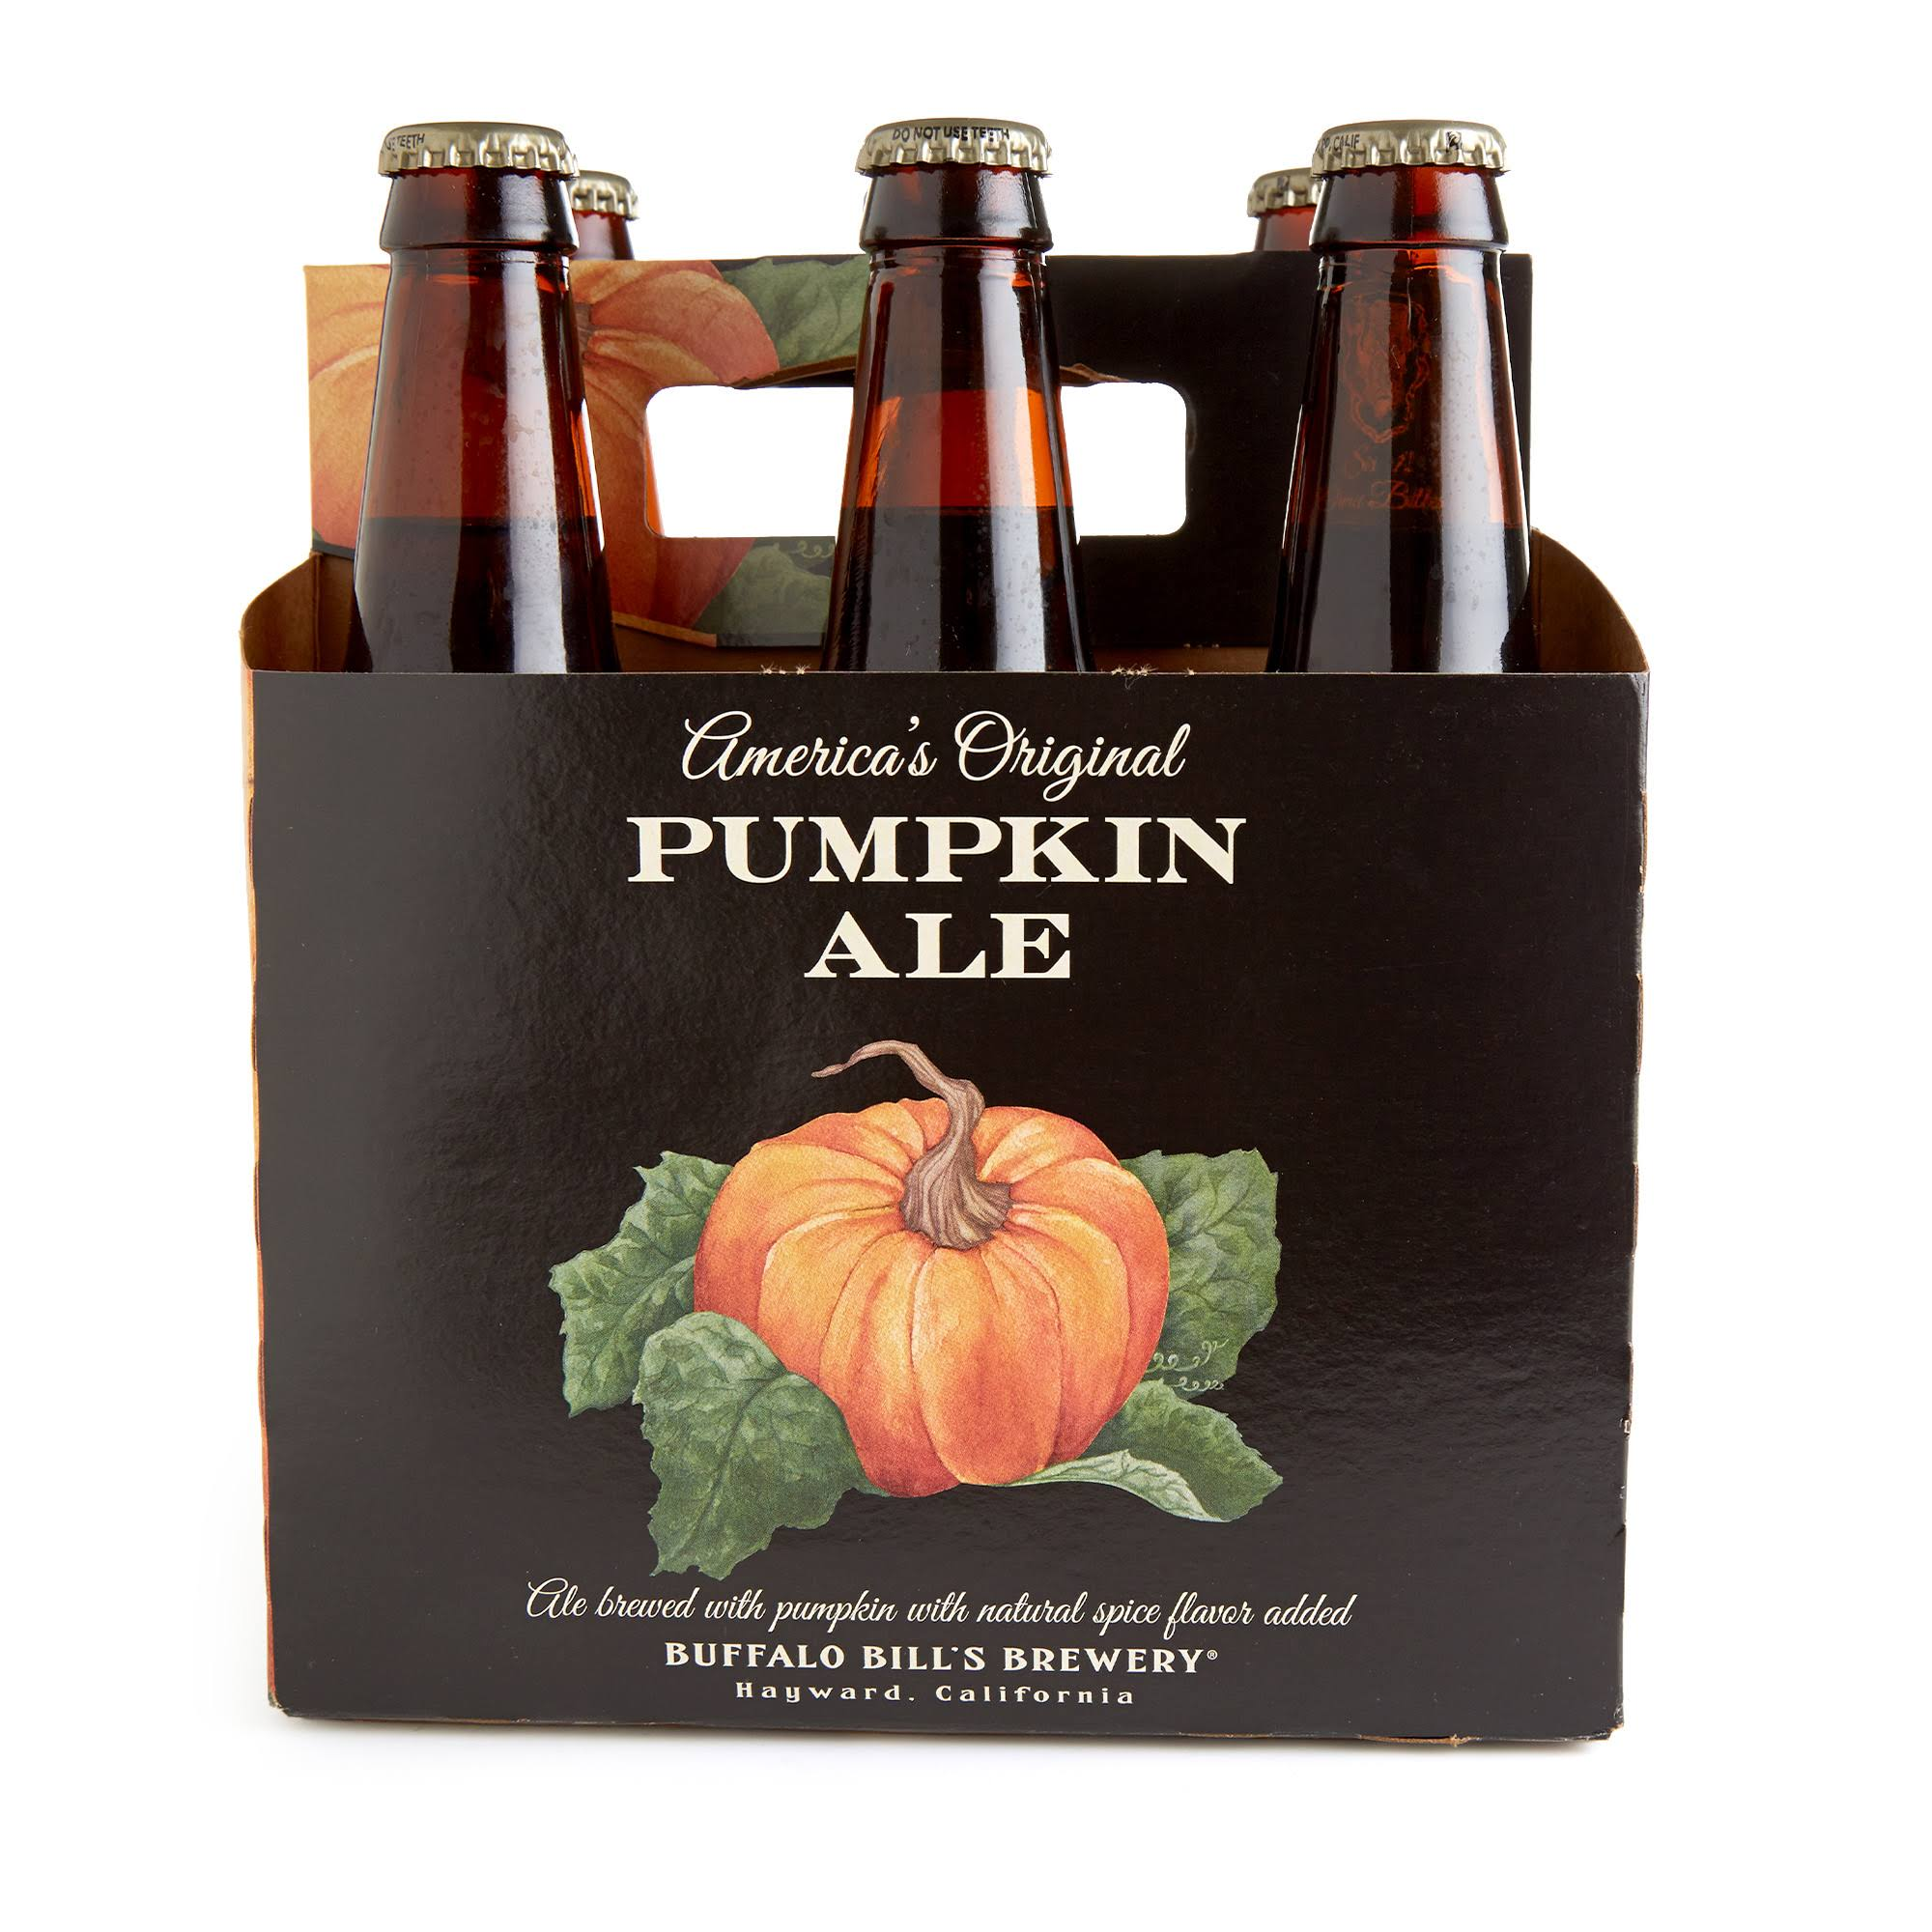 Buffalo Bills Americas Original Pumpkin Ale - 12oz, 6pk